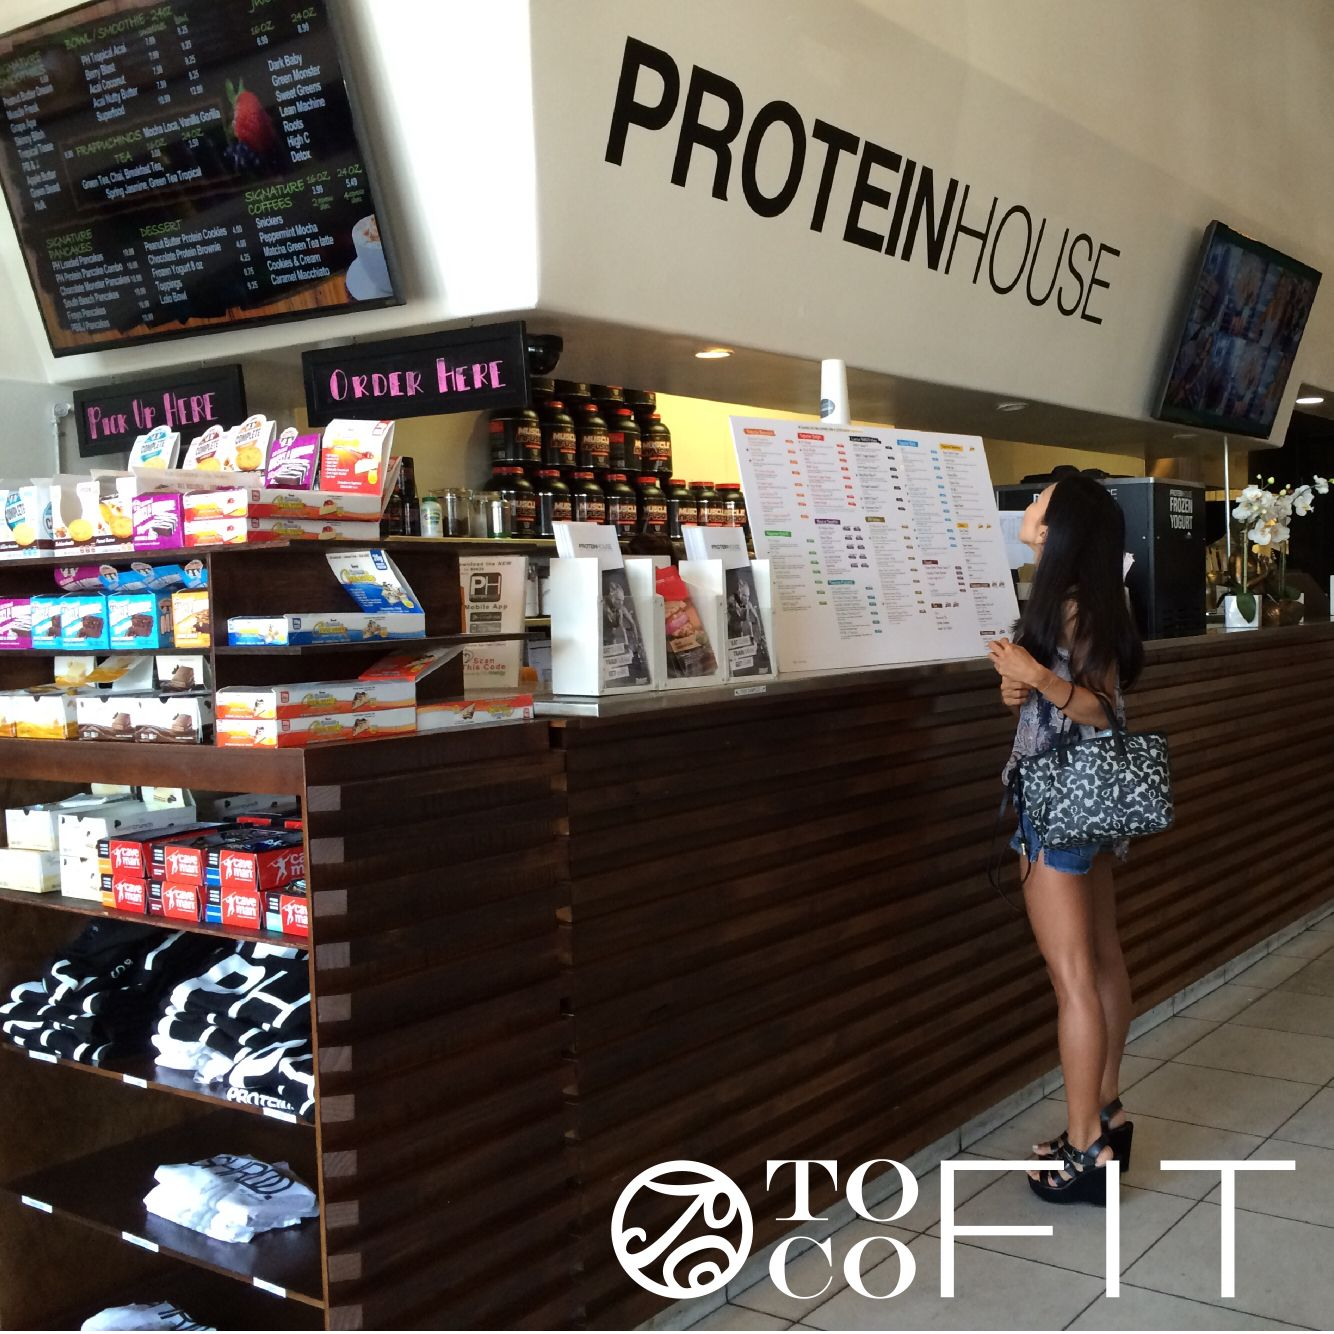 Tbt To Our Trip To Lv Proteinhouse1 If You Find Yourself In Las Vegas And Are Looking For A Healthy Restaurant Be Sure To Las Vegas Healthy Restaurant Vegas